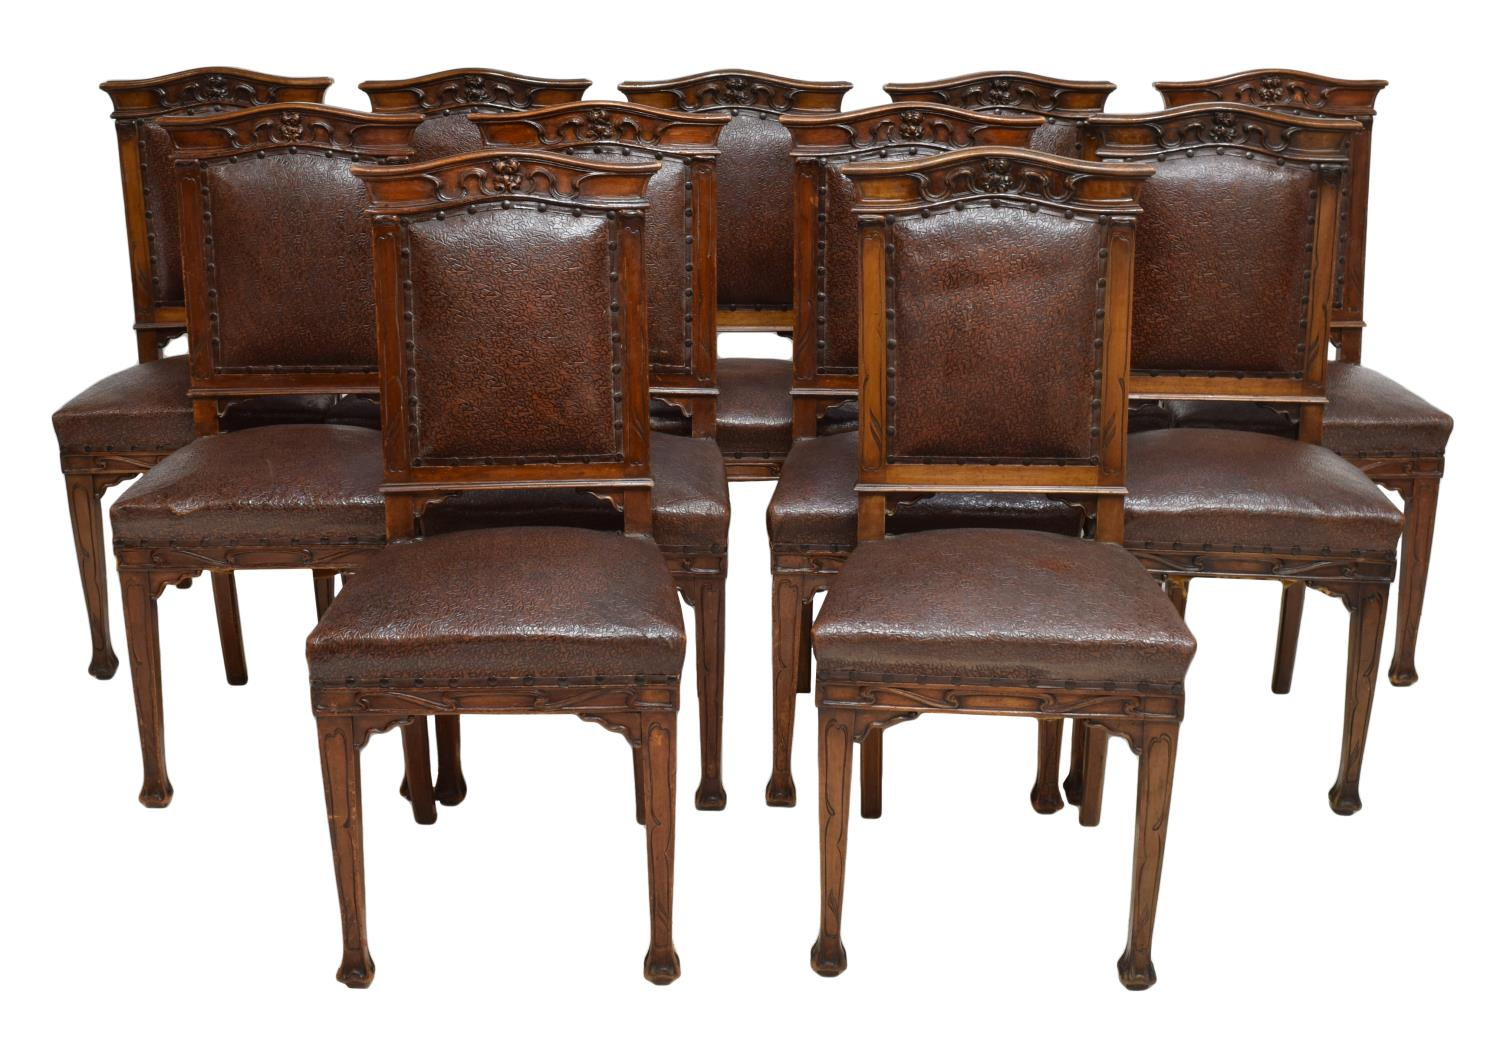 11 FRENCH ART NOUVEAU LEATHER DINING CHAIRS August  : 1015 from www.austinauction.com size 1500 x 1038 jpeg 173kB